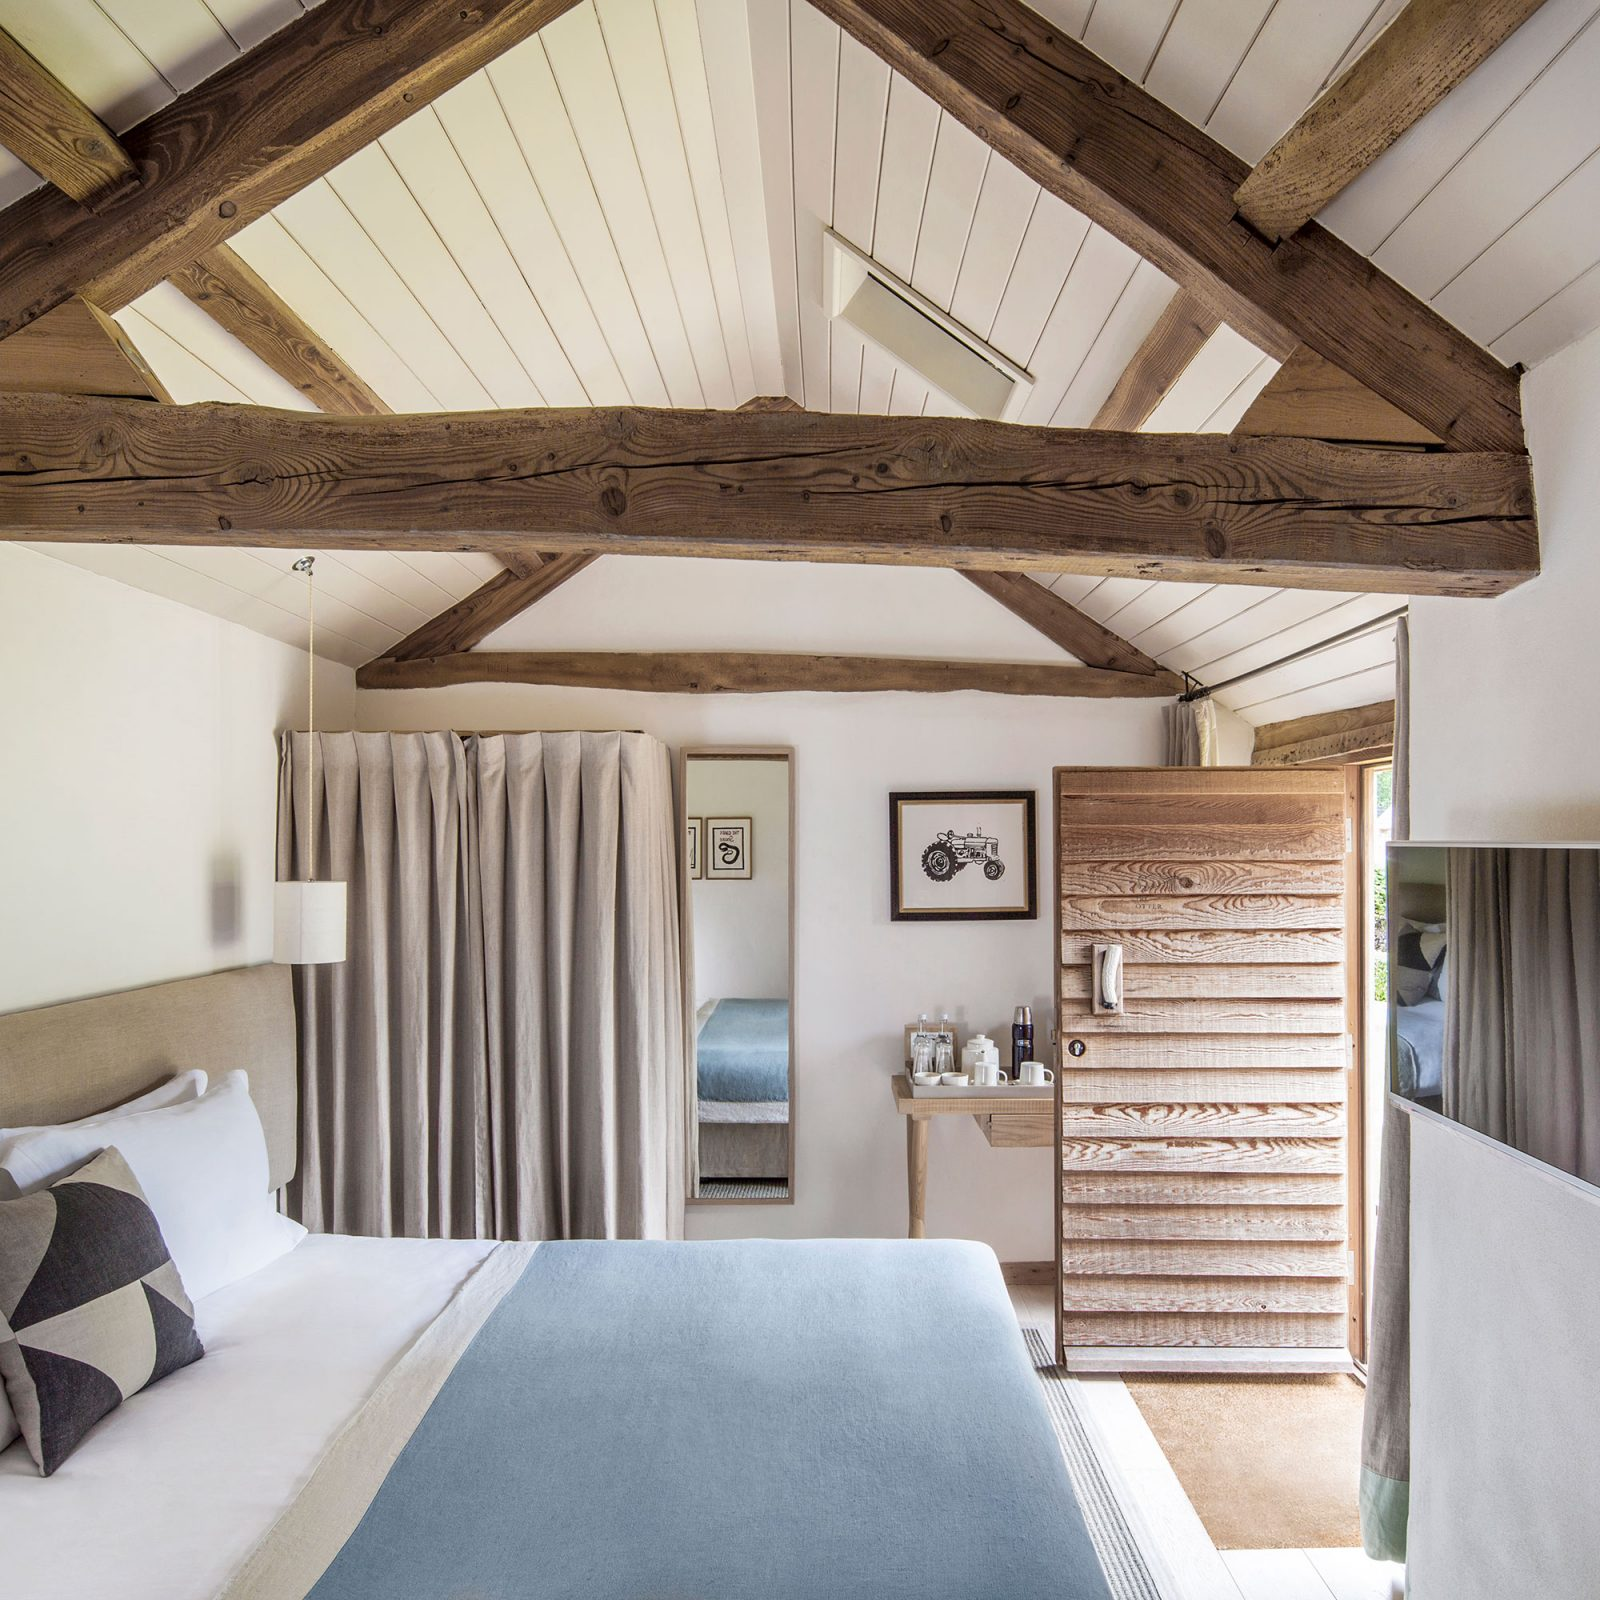 The Wild Rabbit, Kingham Pub with Rooms in Oxfordshire 10